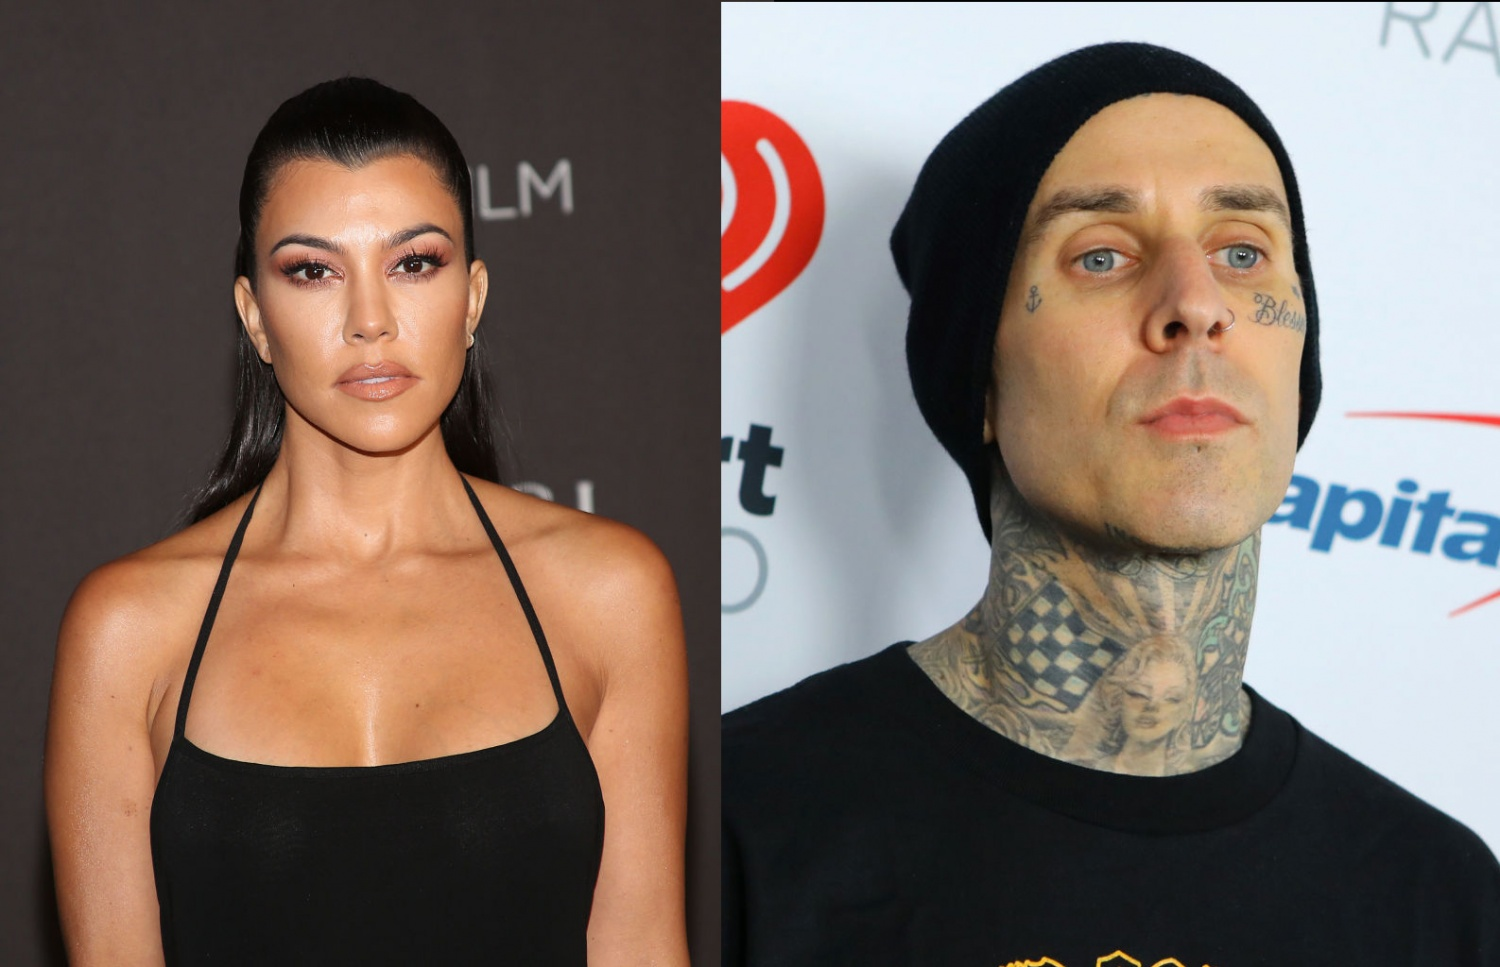 Kourtney Kardashian And Travis Barker PDA Reaches New Level As Couple Posts A Picture of Drummer's Blood